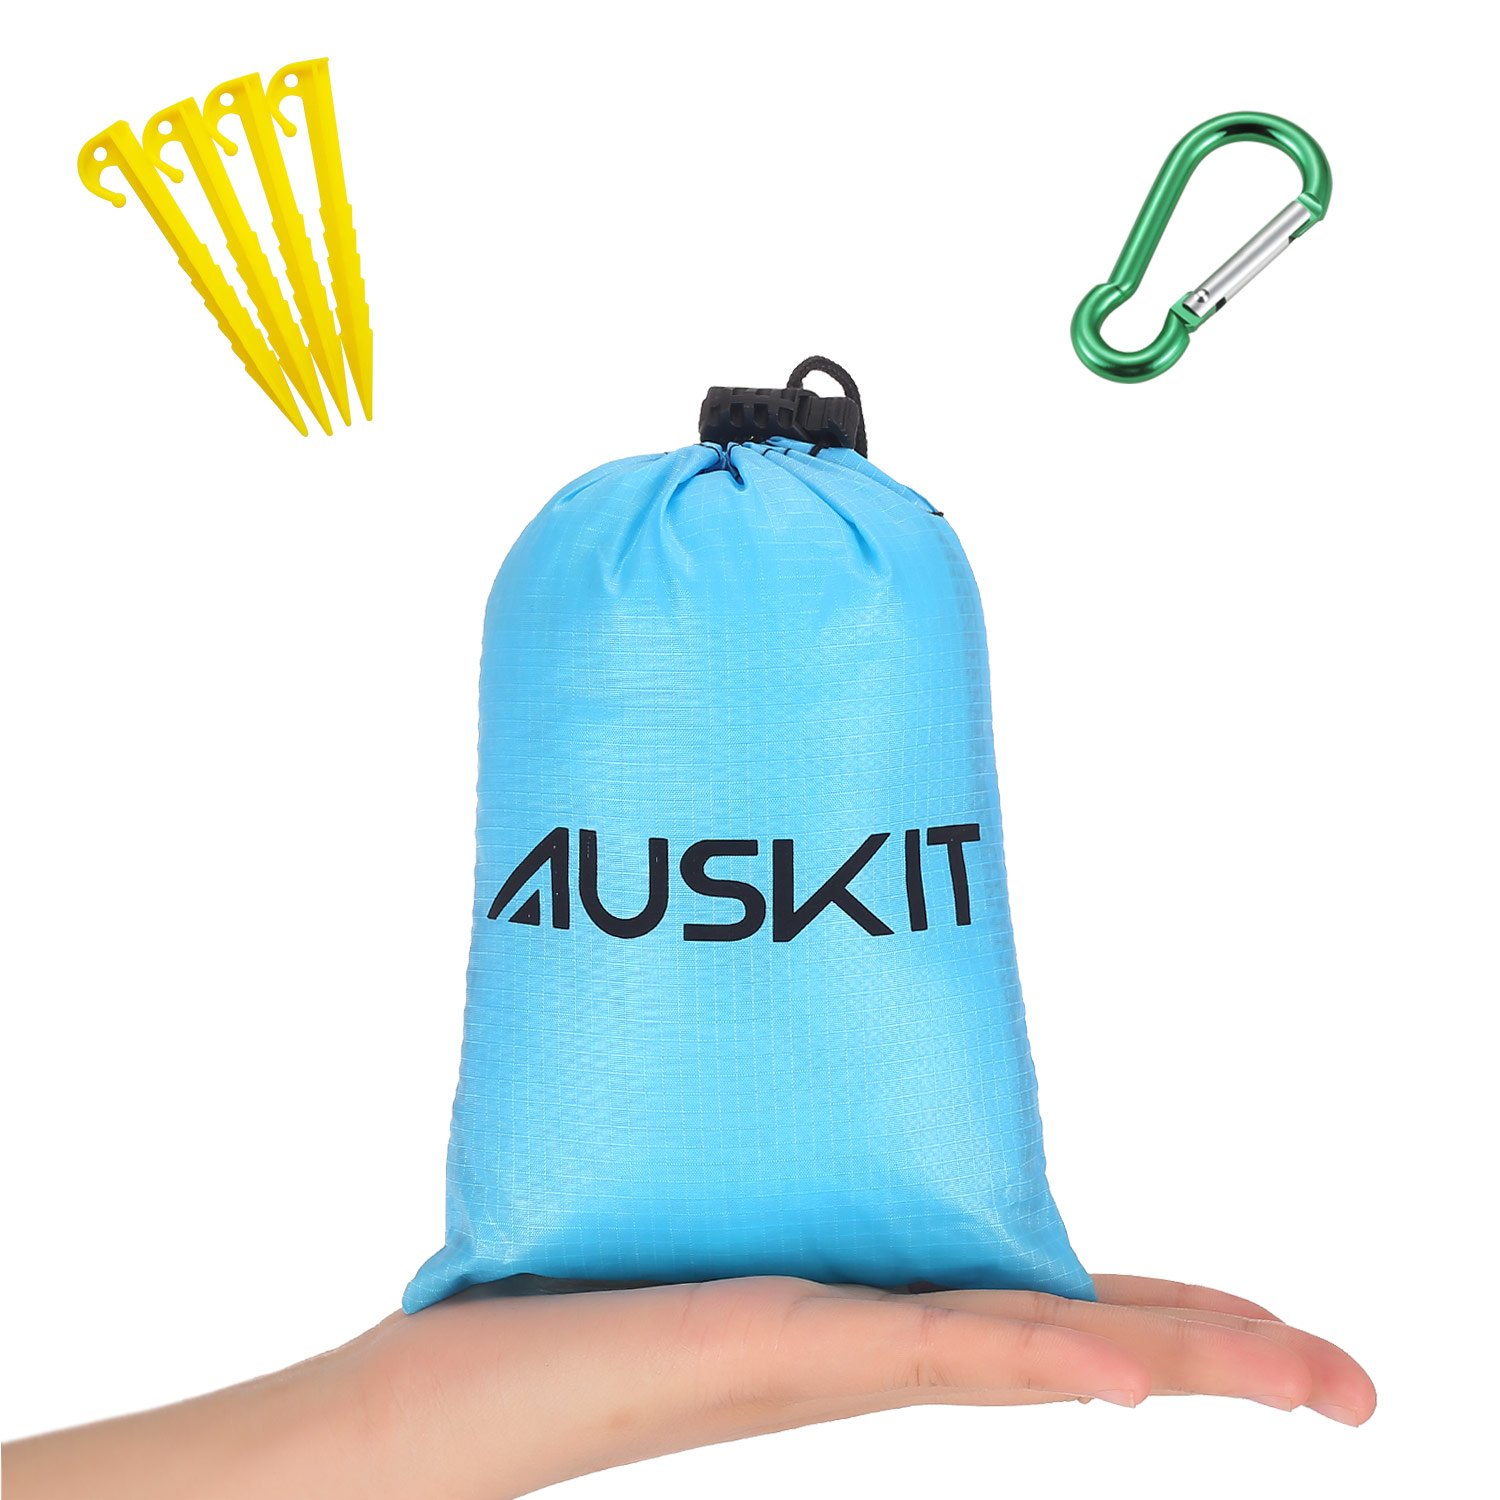 Outdoor Picnic Beach Blanket with Stakes, Waterproof Camping Trap for Beach ,Camping,,Traveling and Hiking,Pocket blanket with Corner Pockets, Loops and Bag